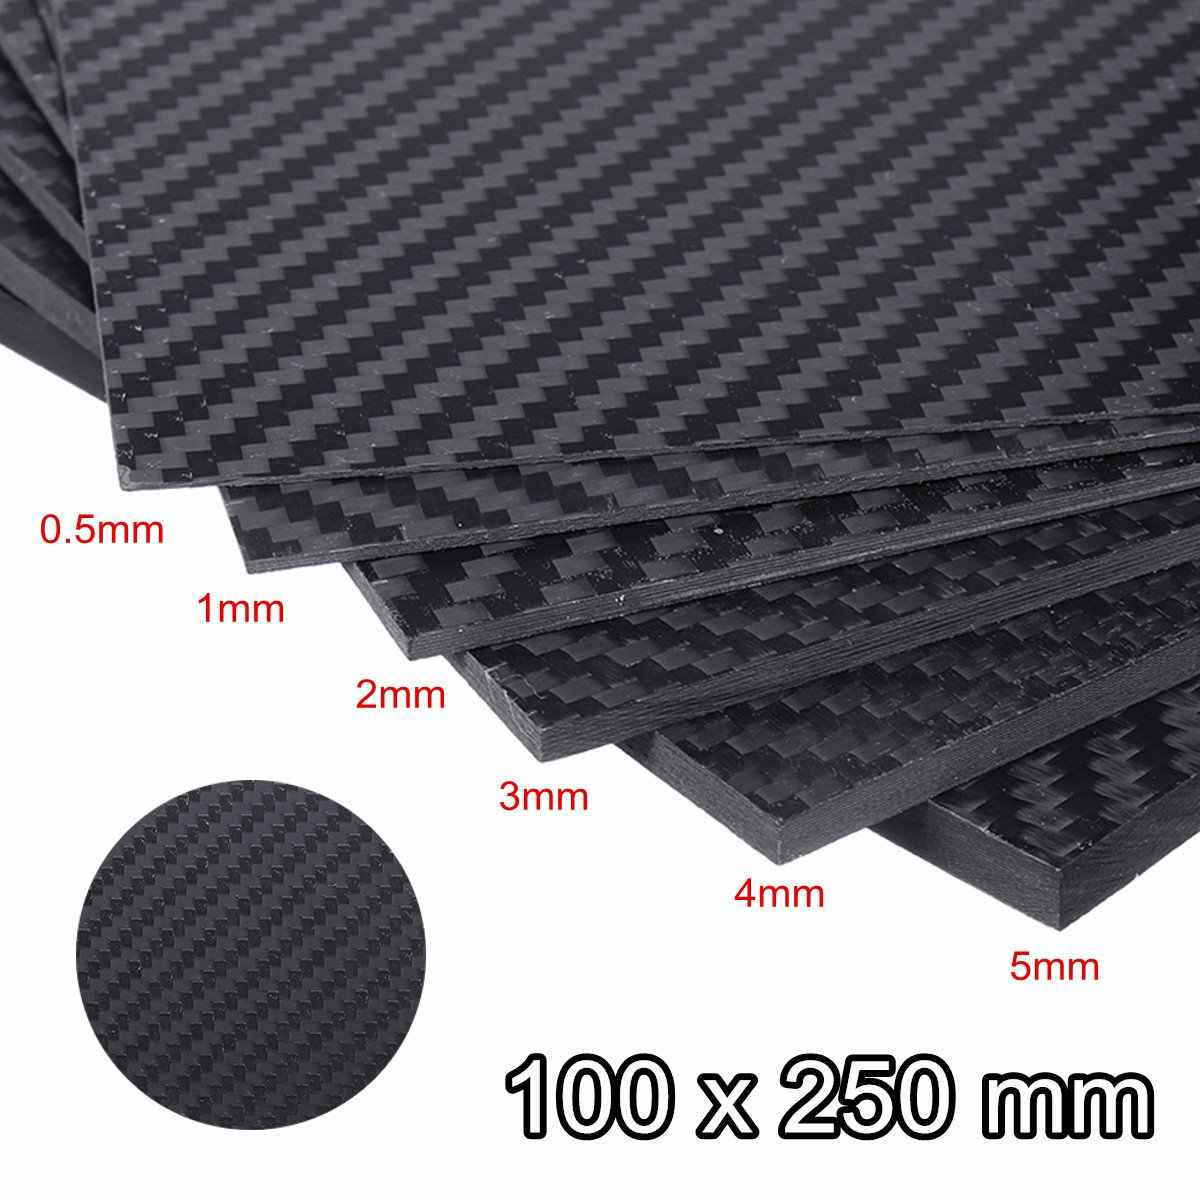 0.5-5MM 100X250 mm 3K Matte Surface Twill Carbon Plate Panel Sheets High Composite Hardness Material Anti-UV Carbon Fiber Board